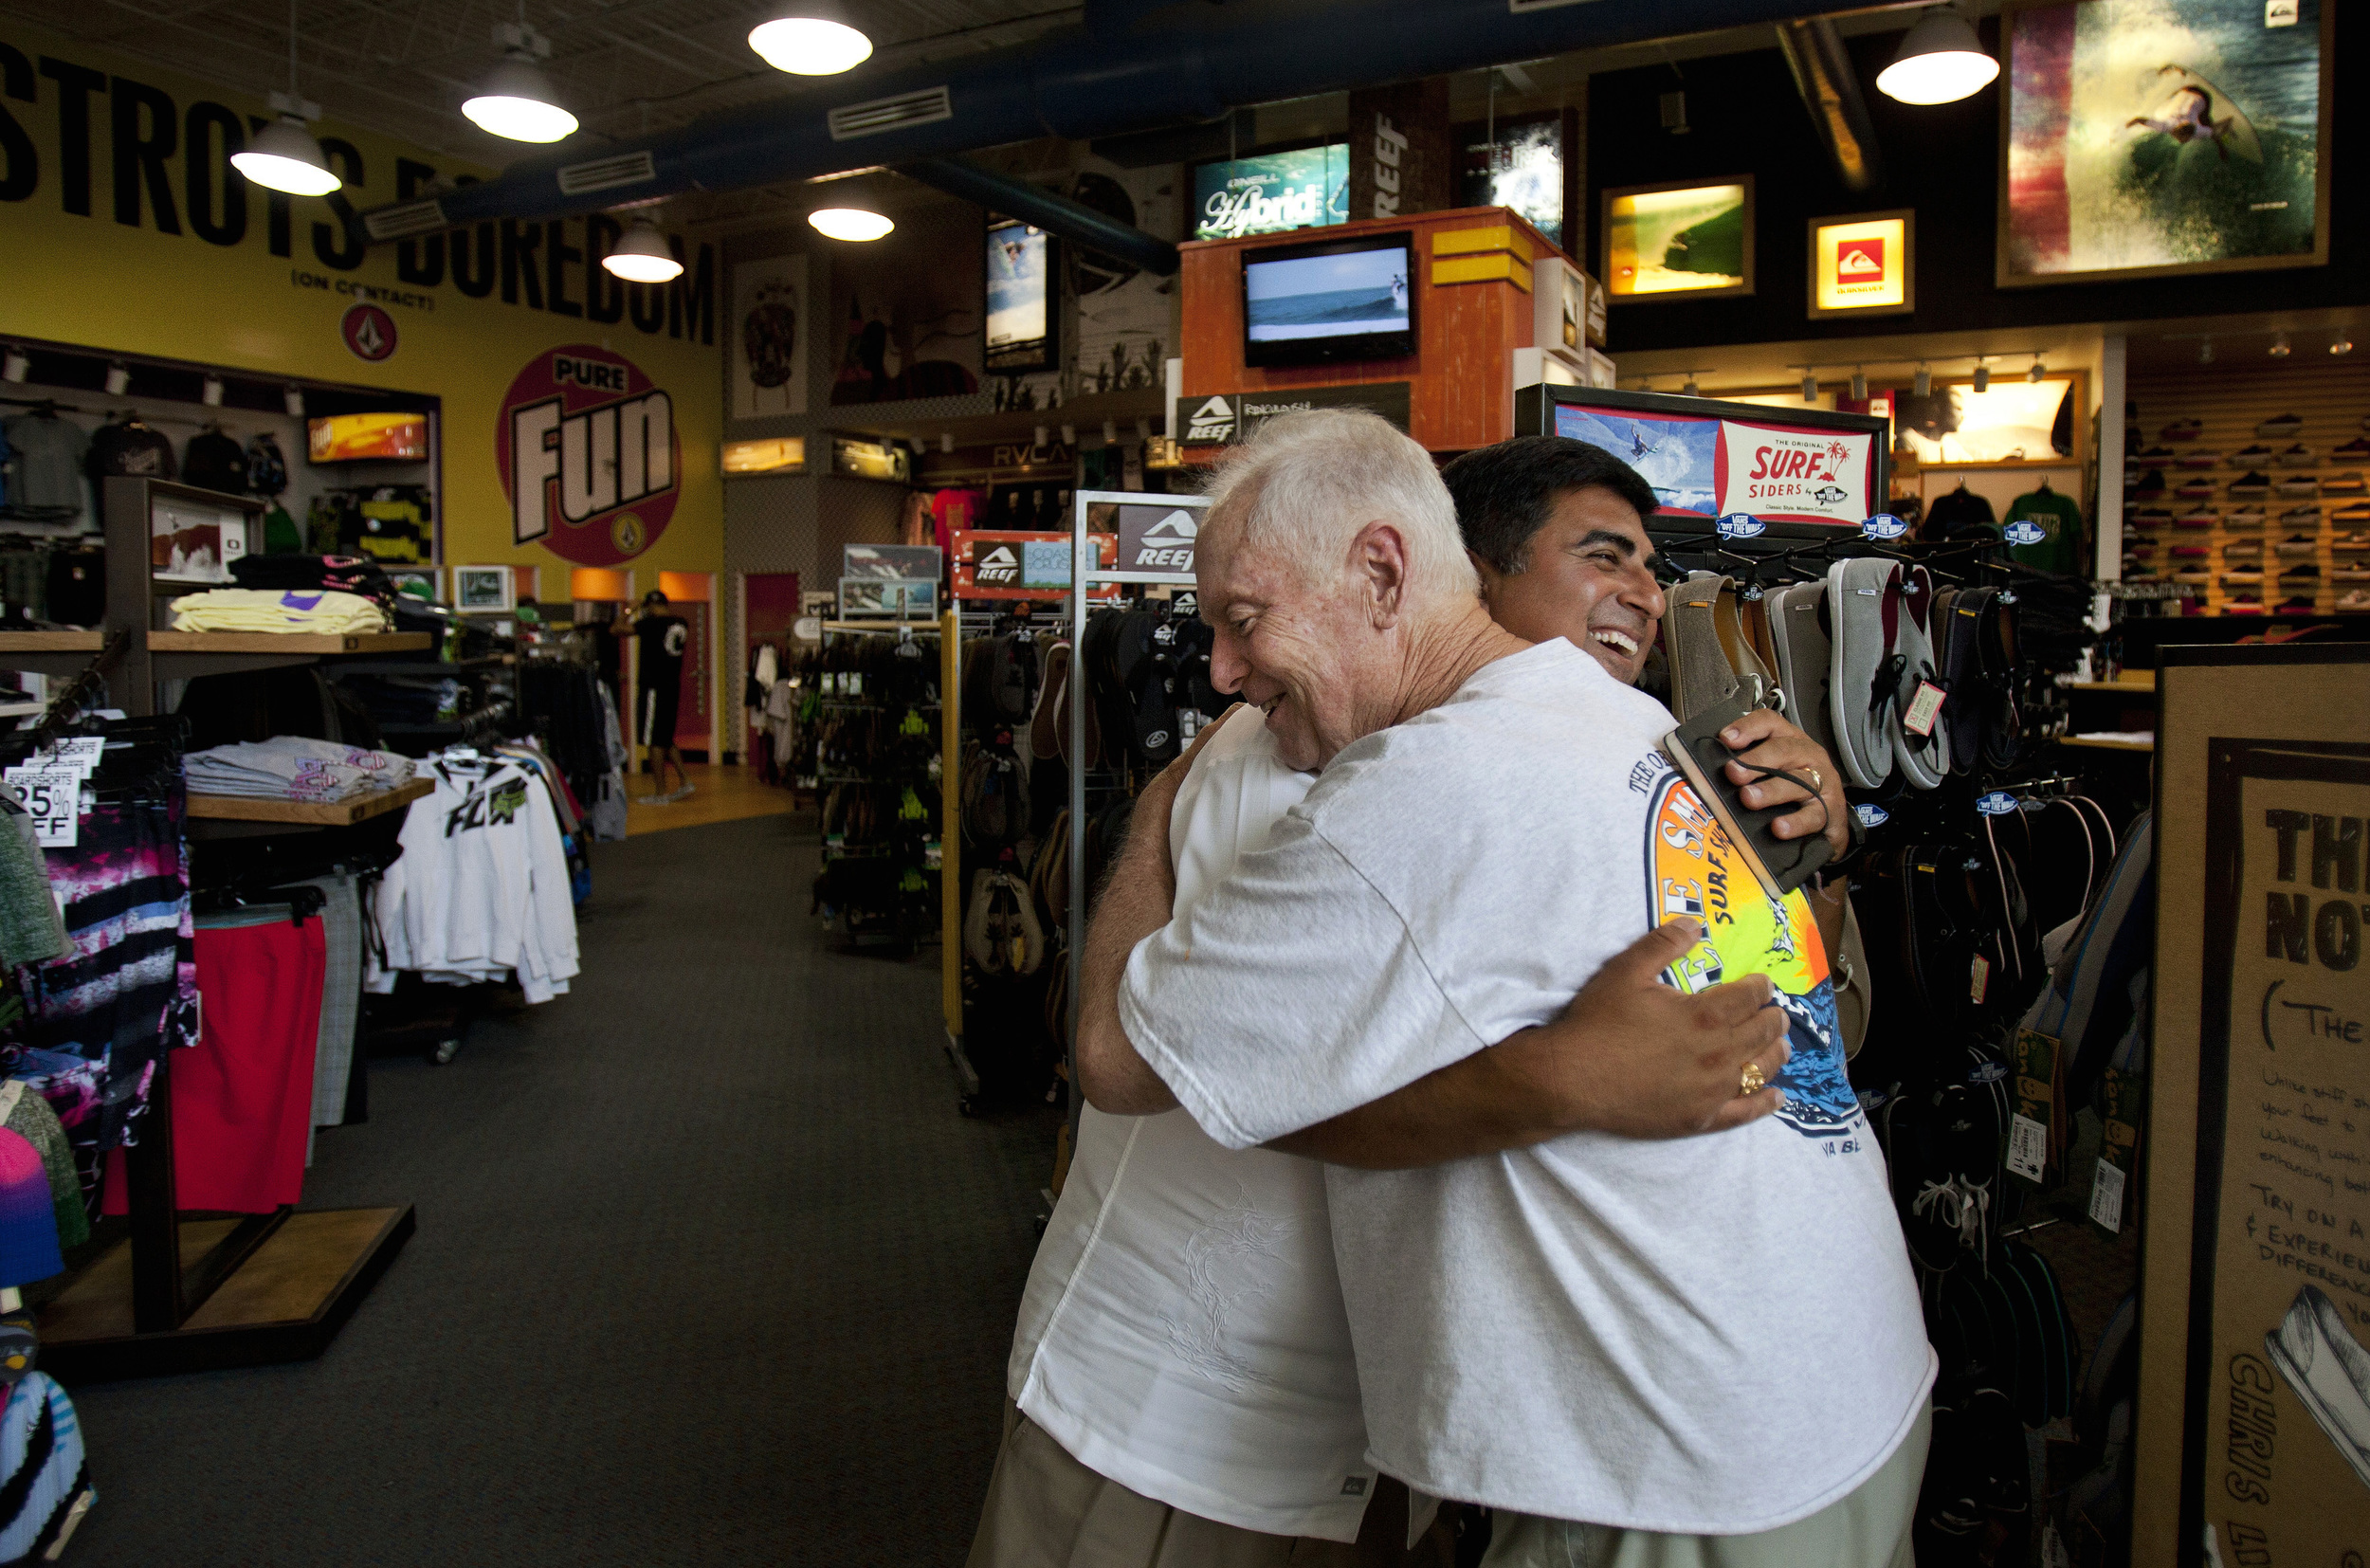 2011, Deepak Nachnani owner of Coastal Edge surf shops is widely regarded as the man responsible for the current boom of the East Coast Surfing Championships. Deepak gives long time local surf icon Pete Smith a hug inside the Coastal Edge surf shop.